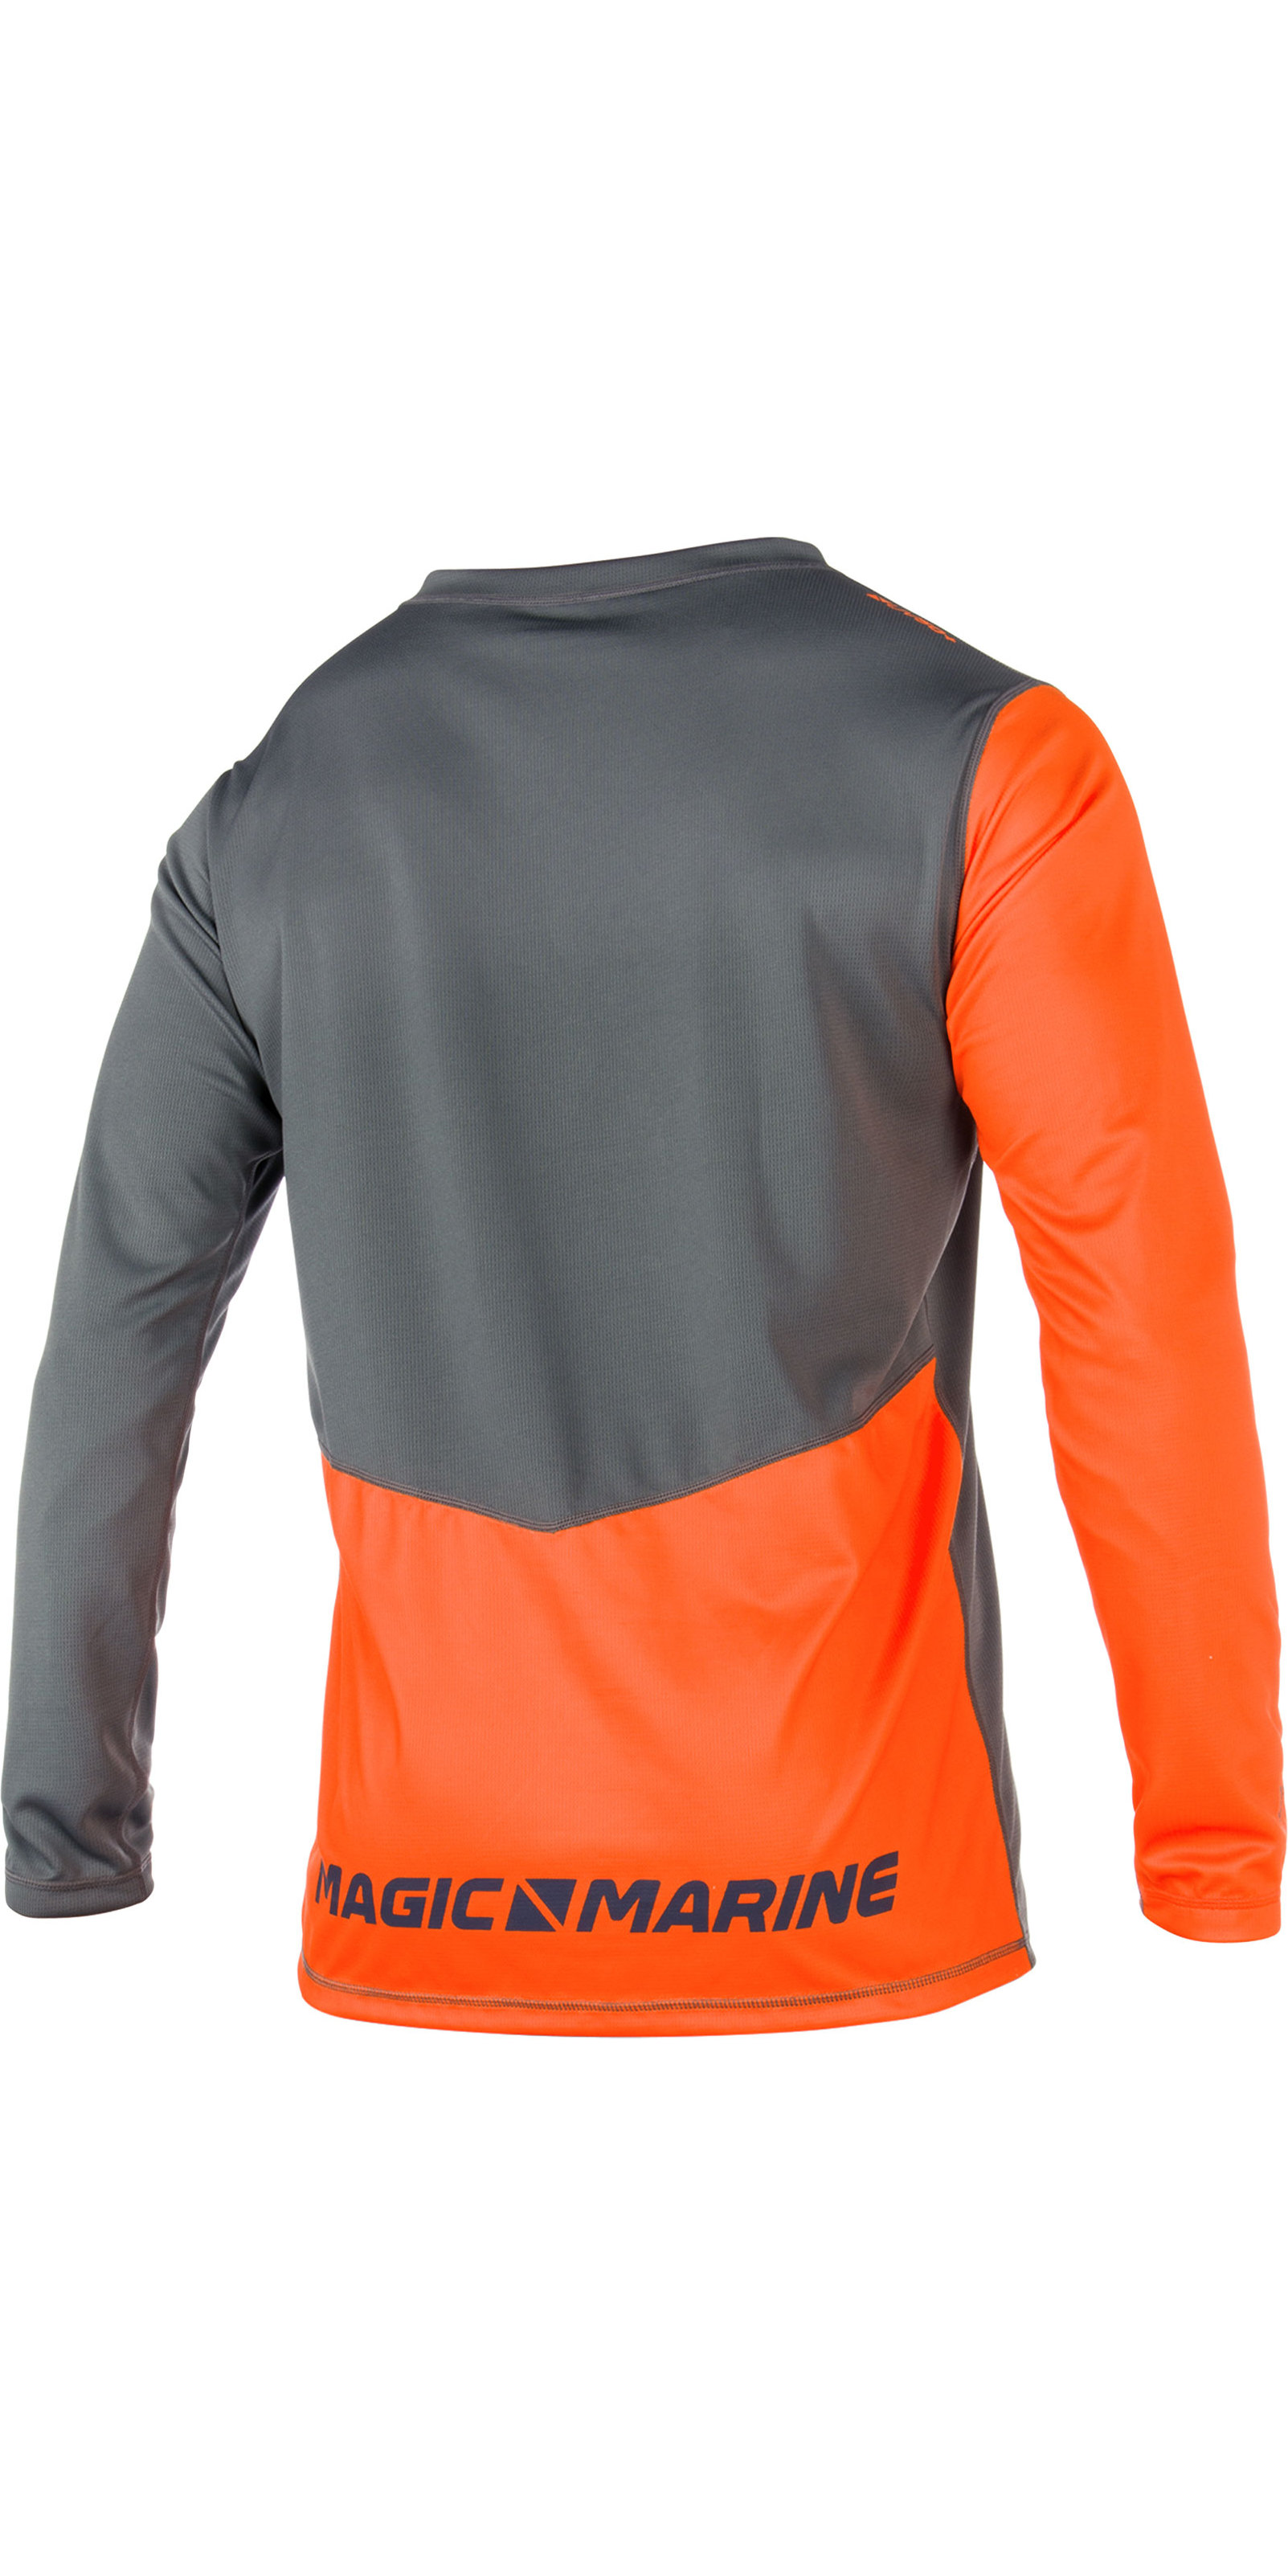 2019 Magic Marine Cube Top De Manga Larga De Dry Rápido Naranja 180061